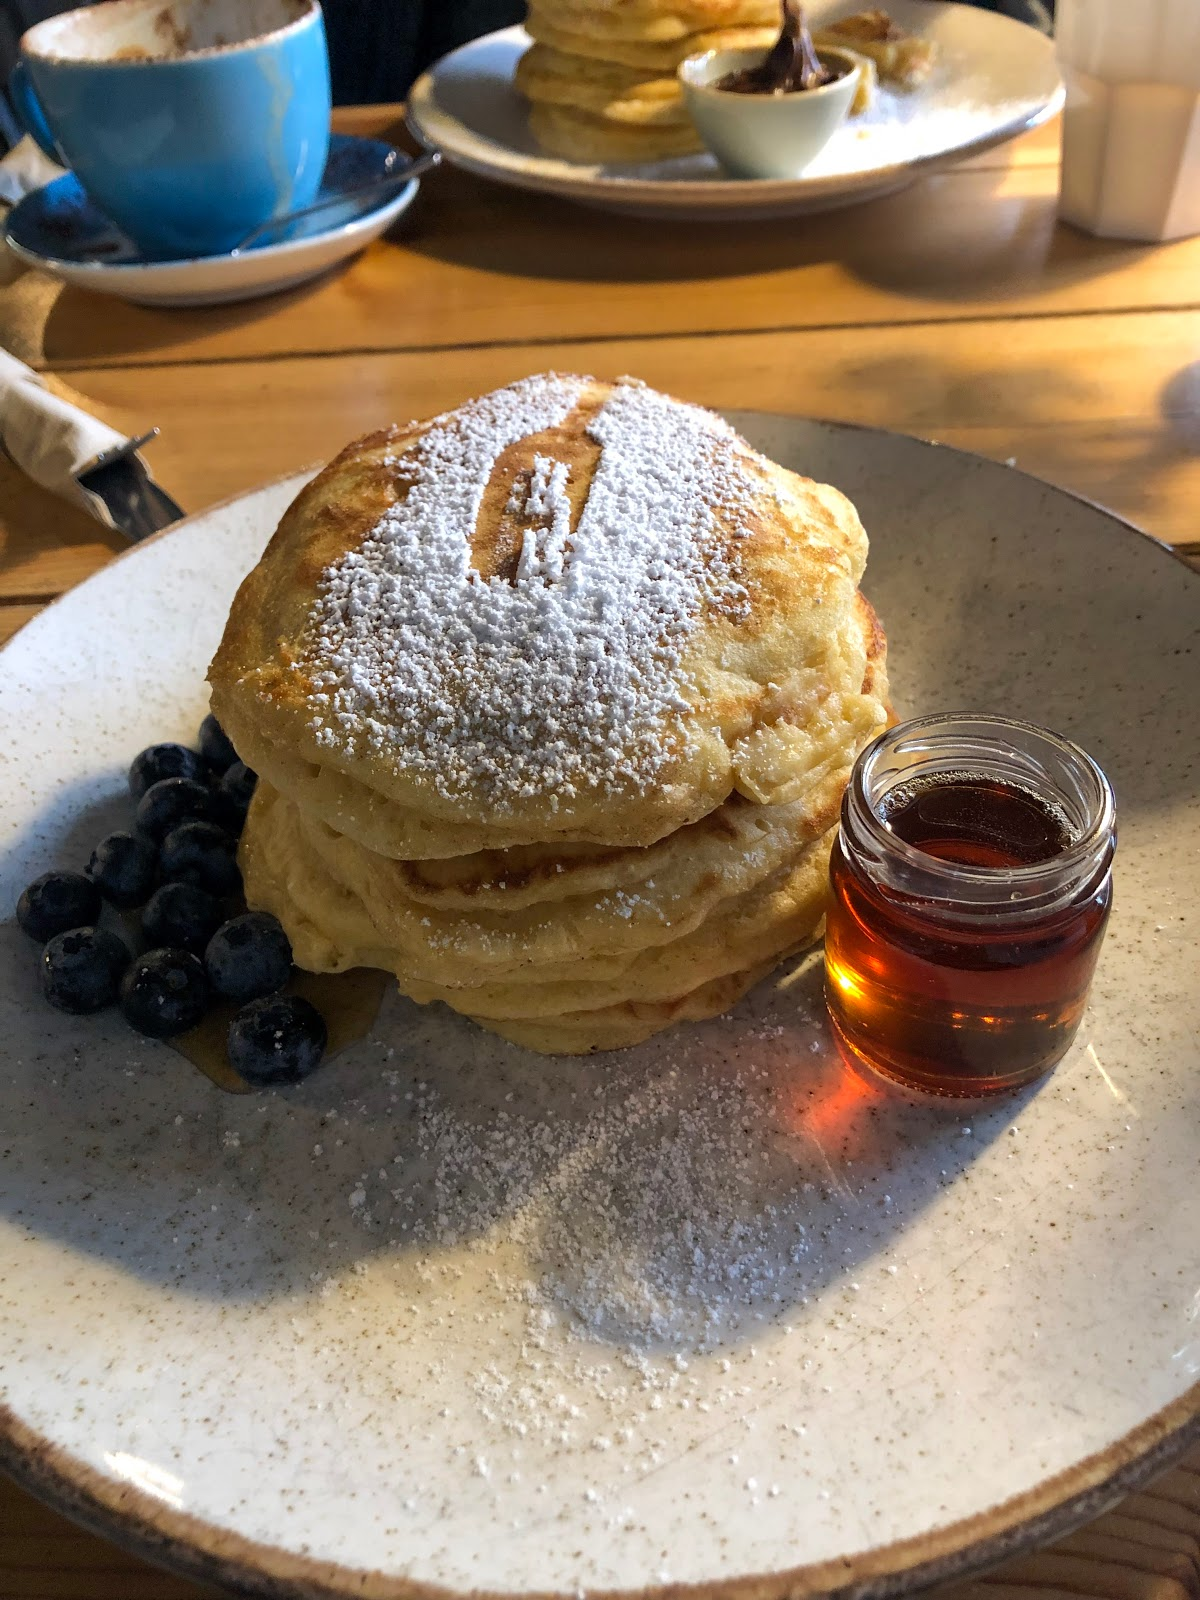 A stack of fluffy American style pancakes served with a blueberries, a jar of syrup and a dust of sugar